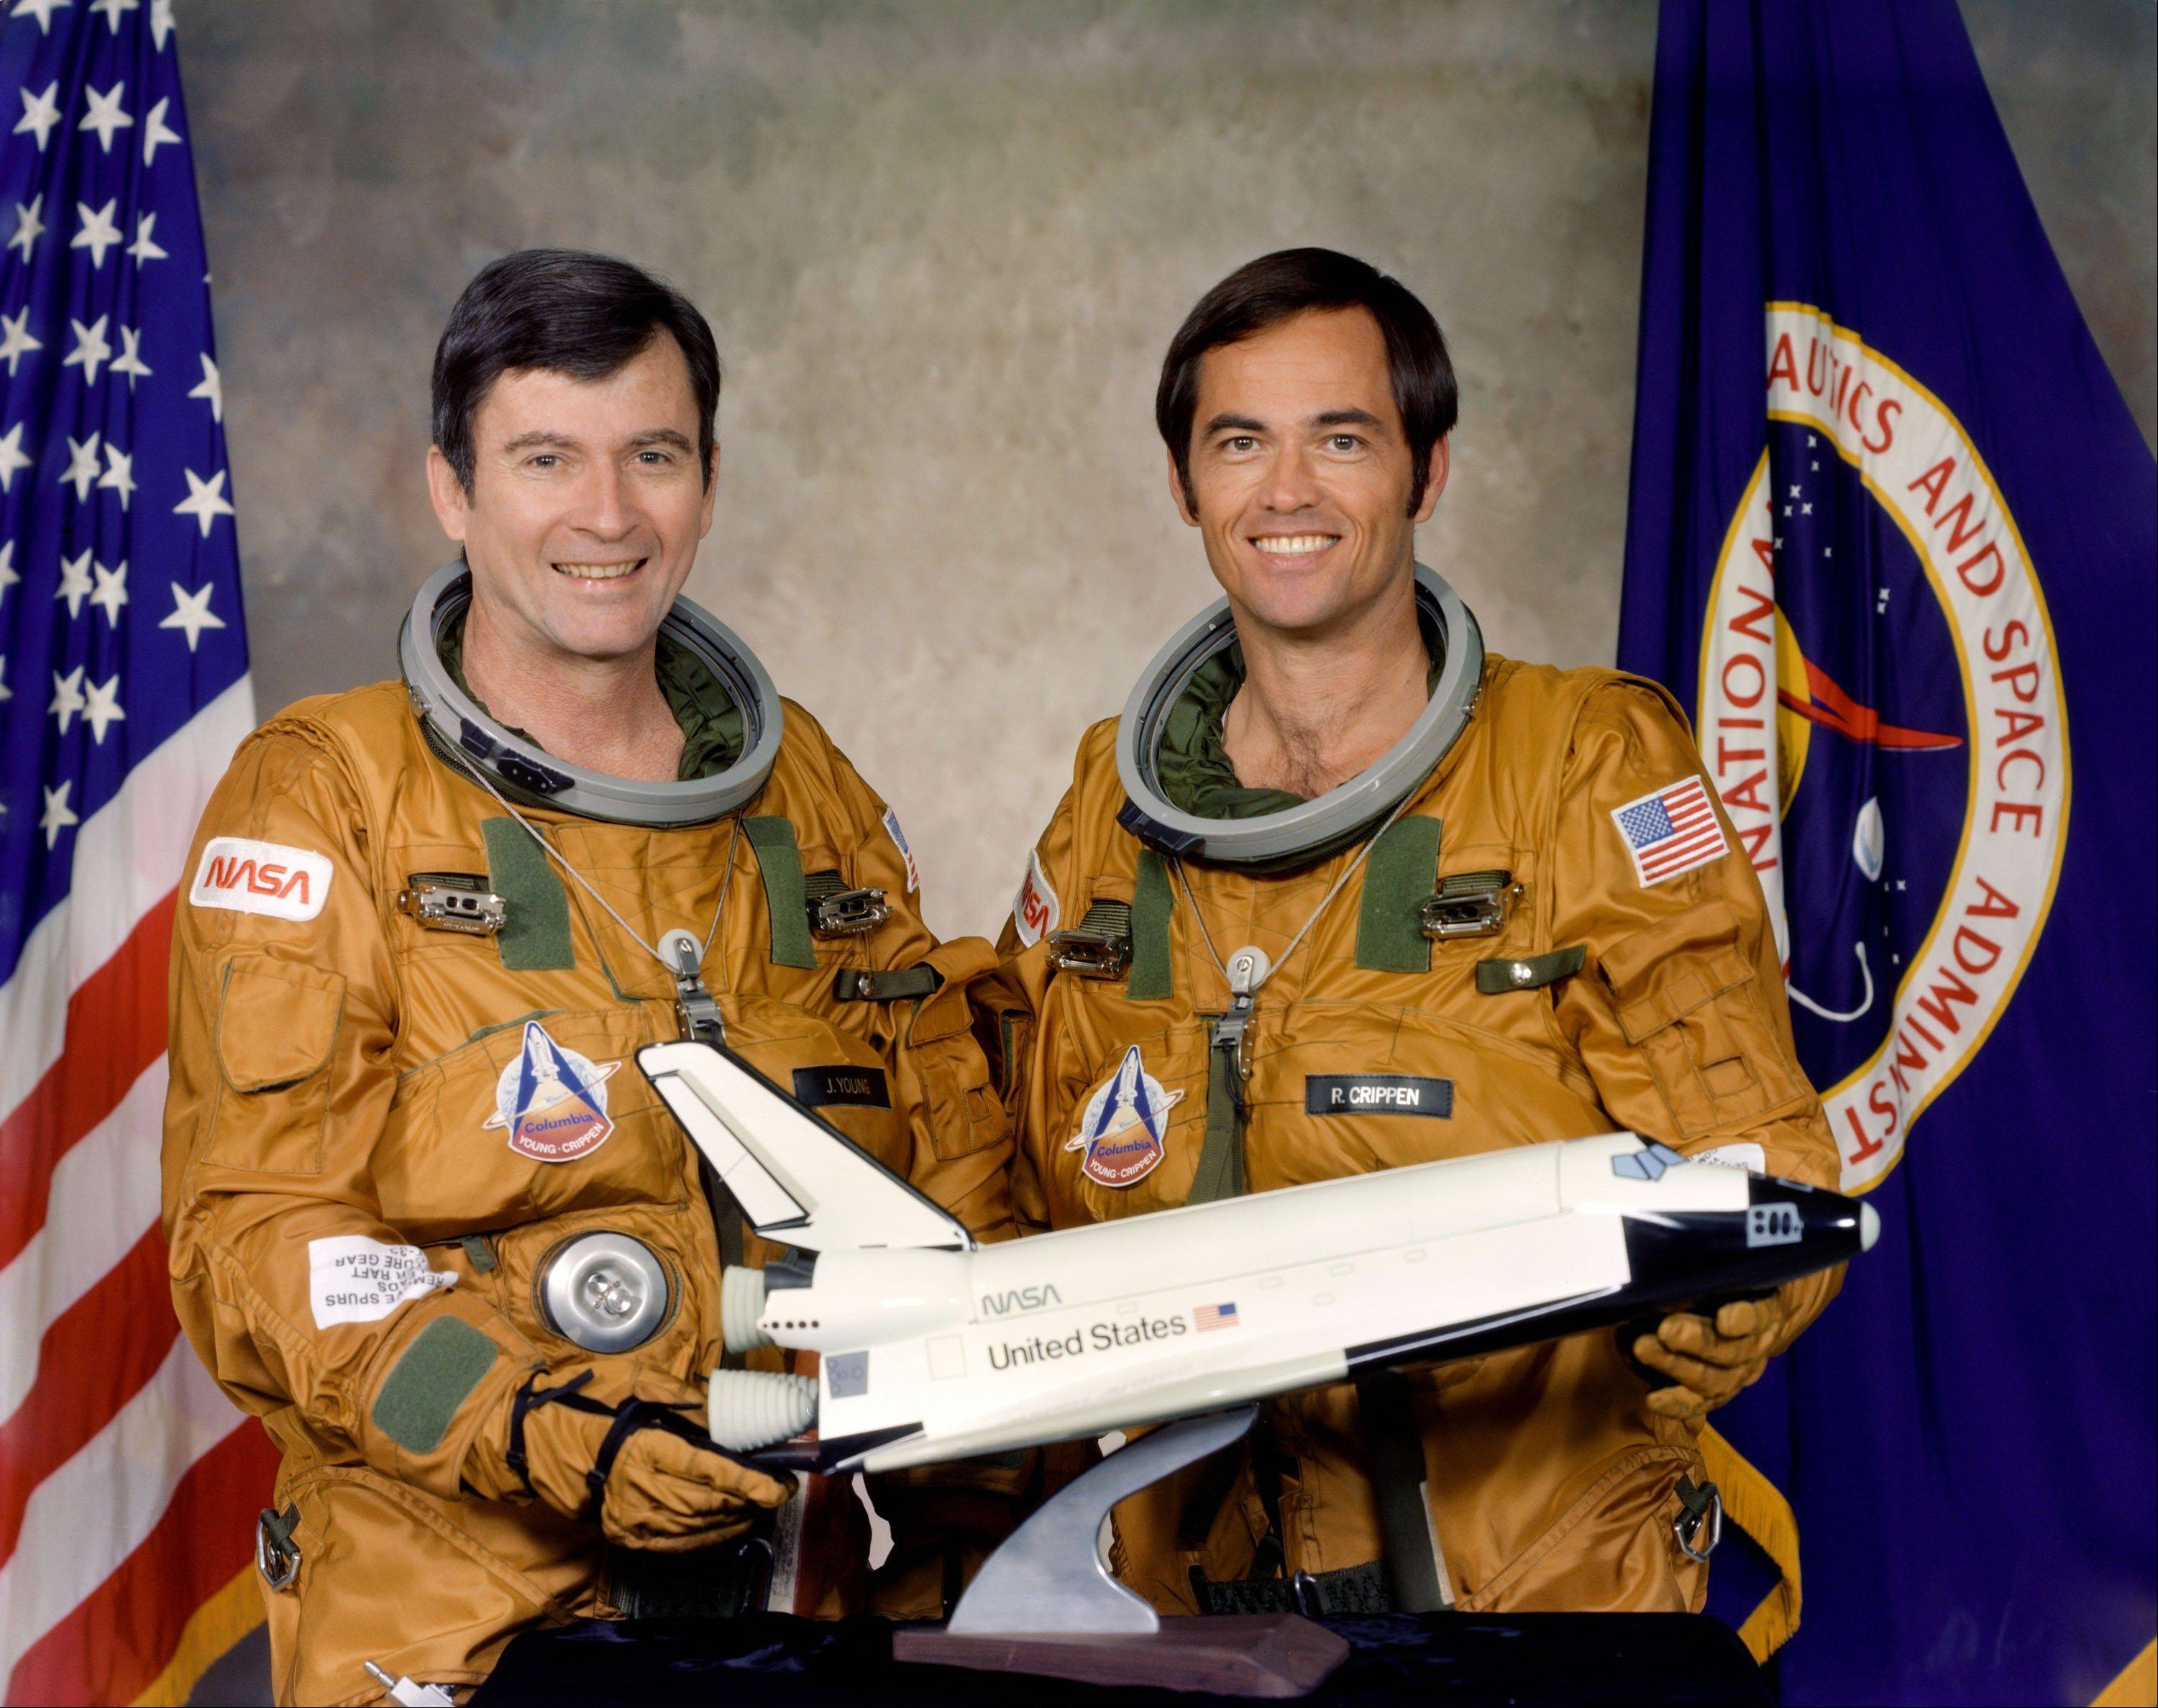 This 1979 picture shows astronauts John W. Young, left, commander, and Robert L. Crippen, pilot, of the first orbital space flight of the space shuttle Columbia which launched on April 12, 1981.